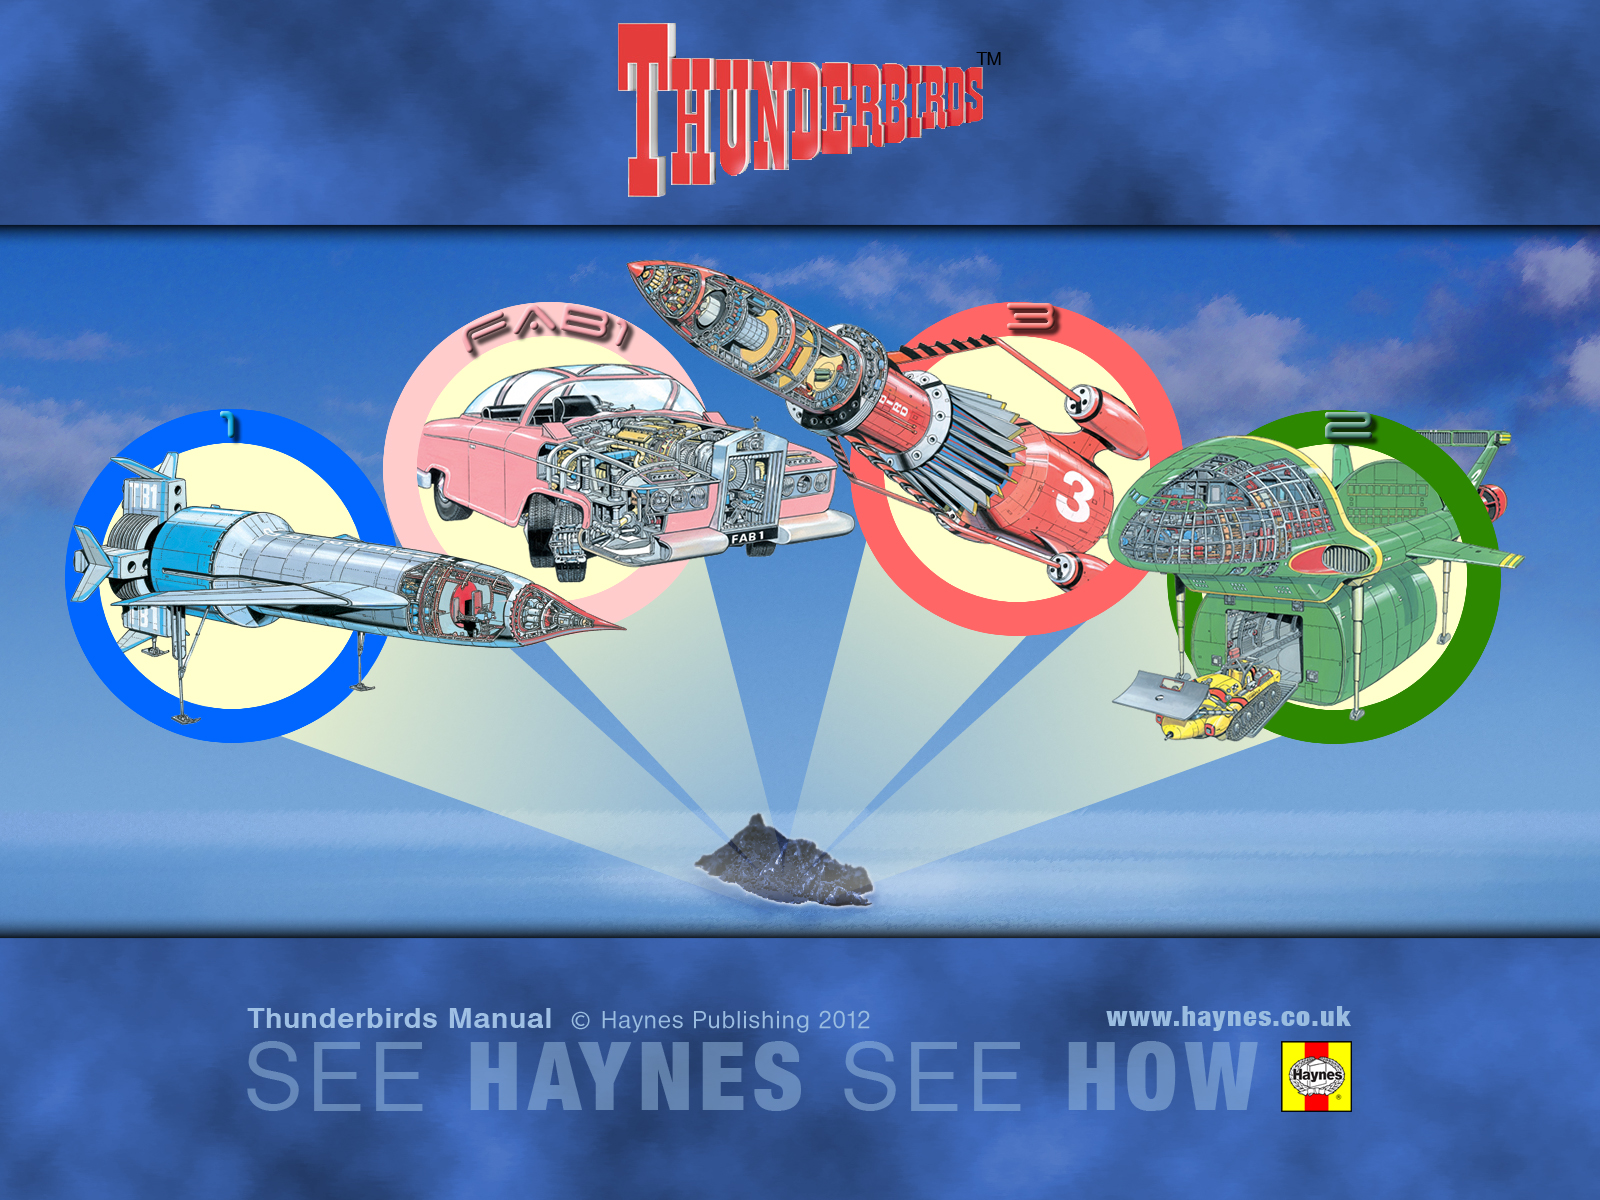 thunderbirds images wallpapers hd - photo #46